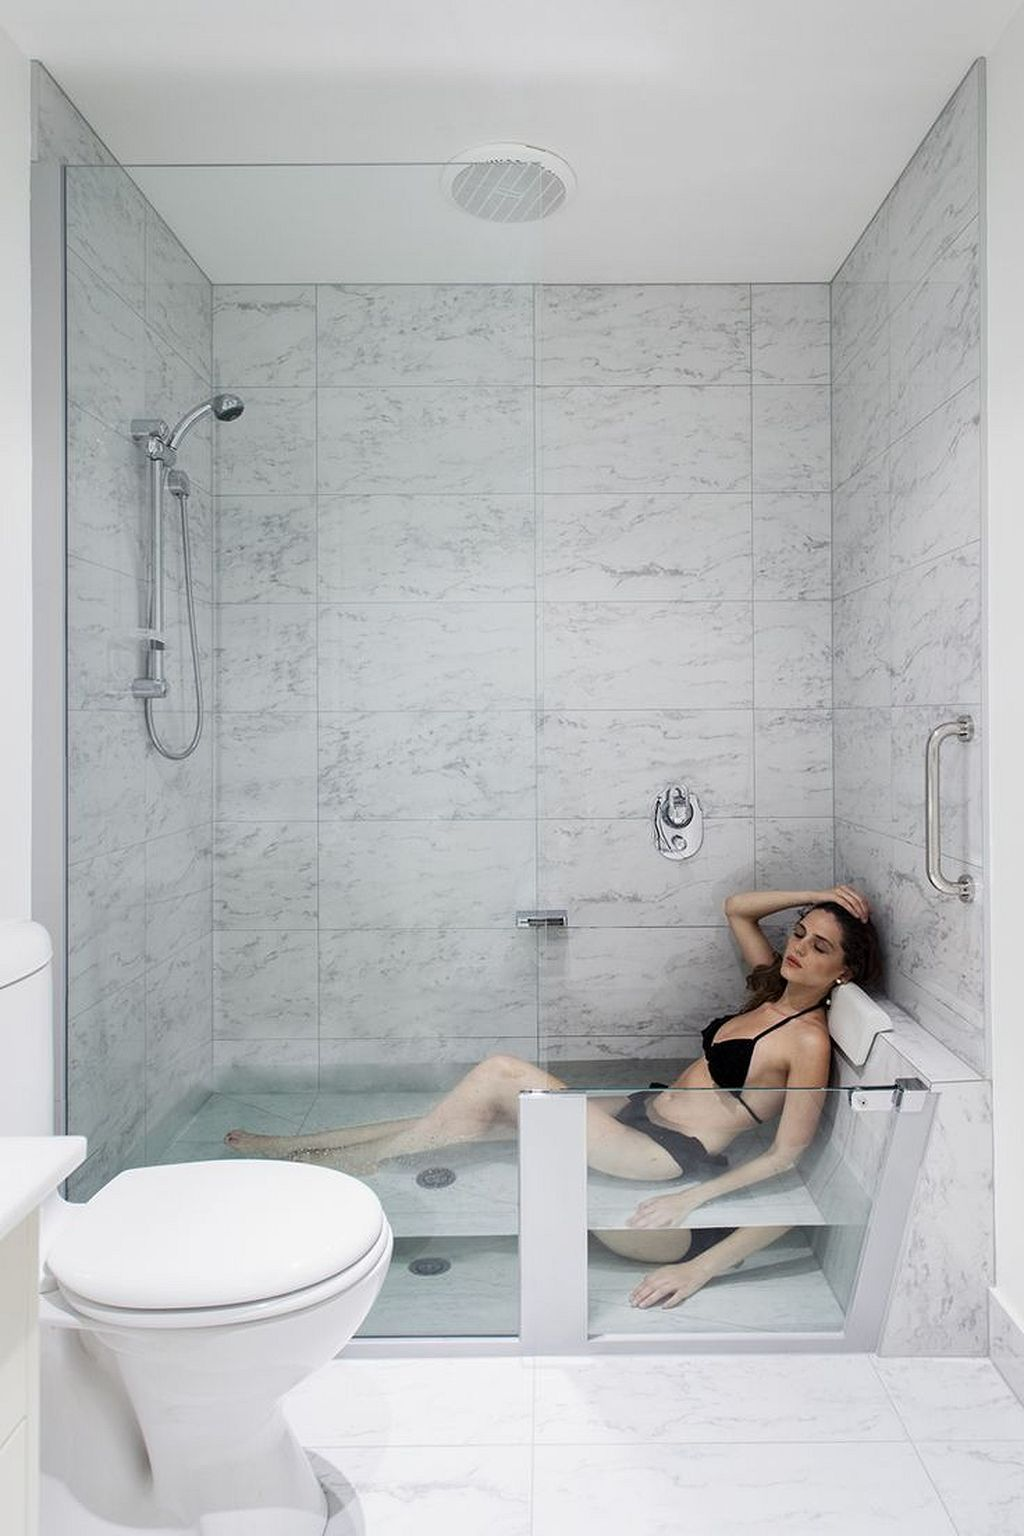 Tiny Bathroom Tub Shower Combo Remodeling Ideas 63 Tinybathrooms Bathroomremodeling Rekonstrukciya Dushevoj